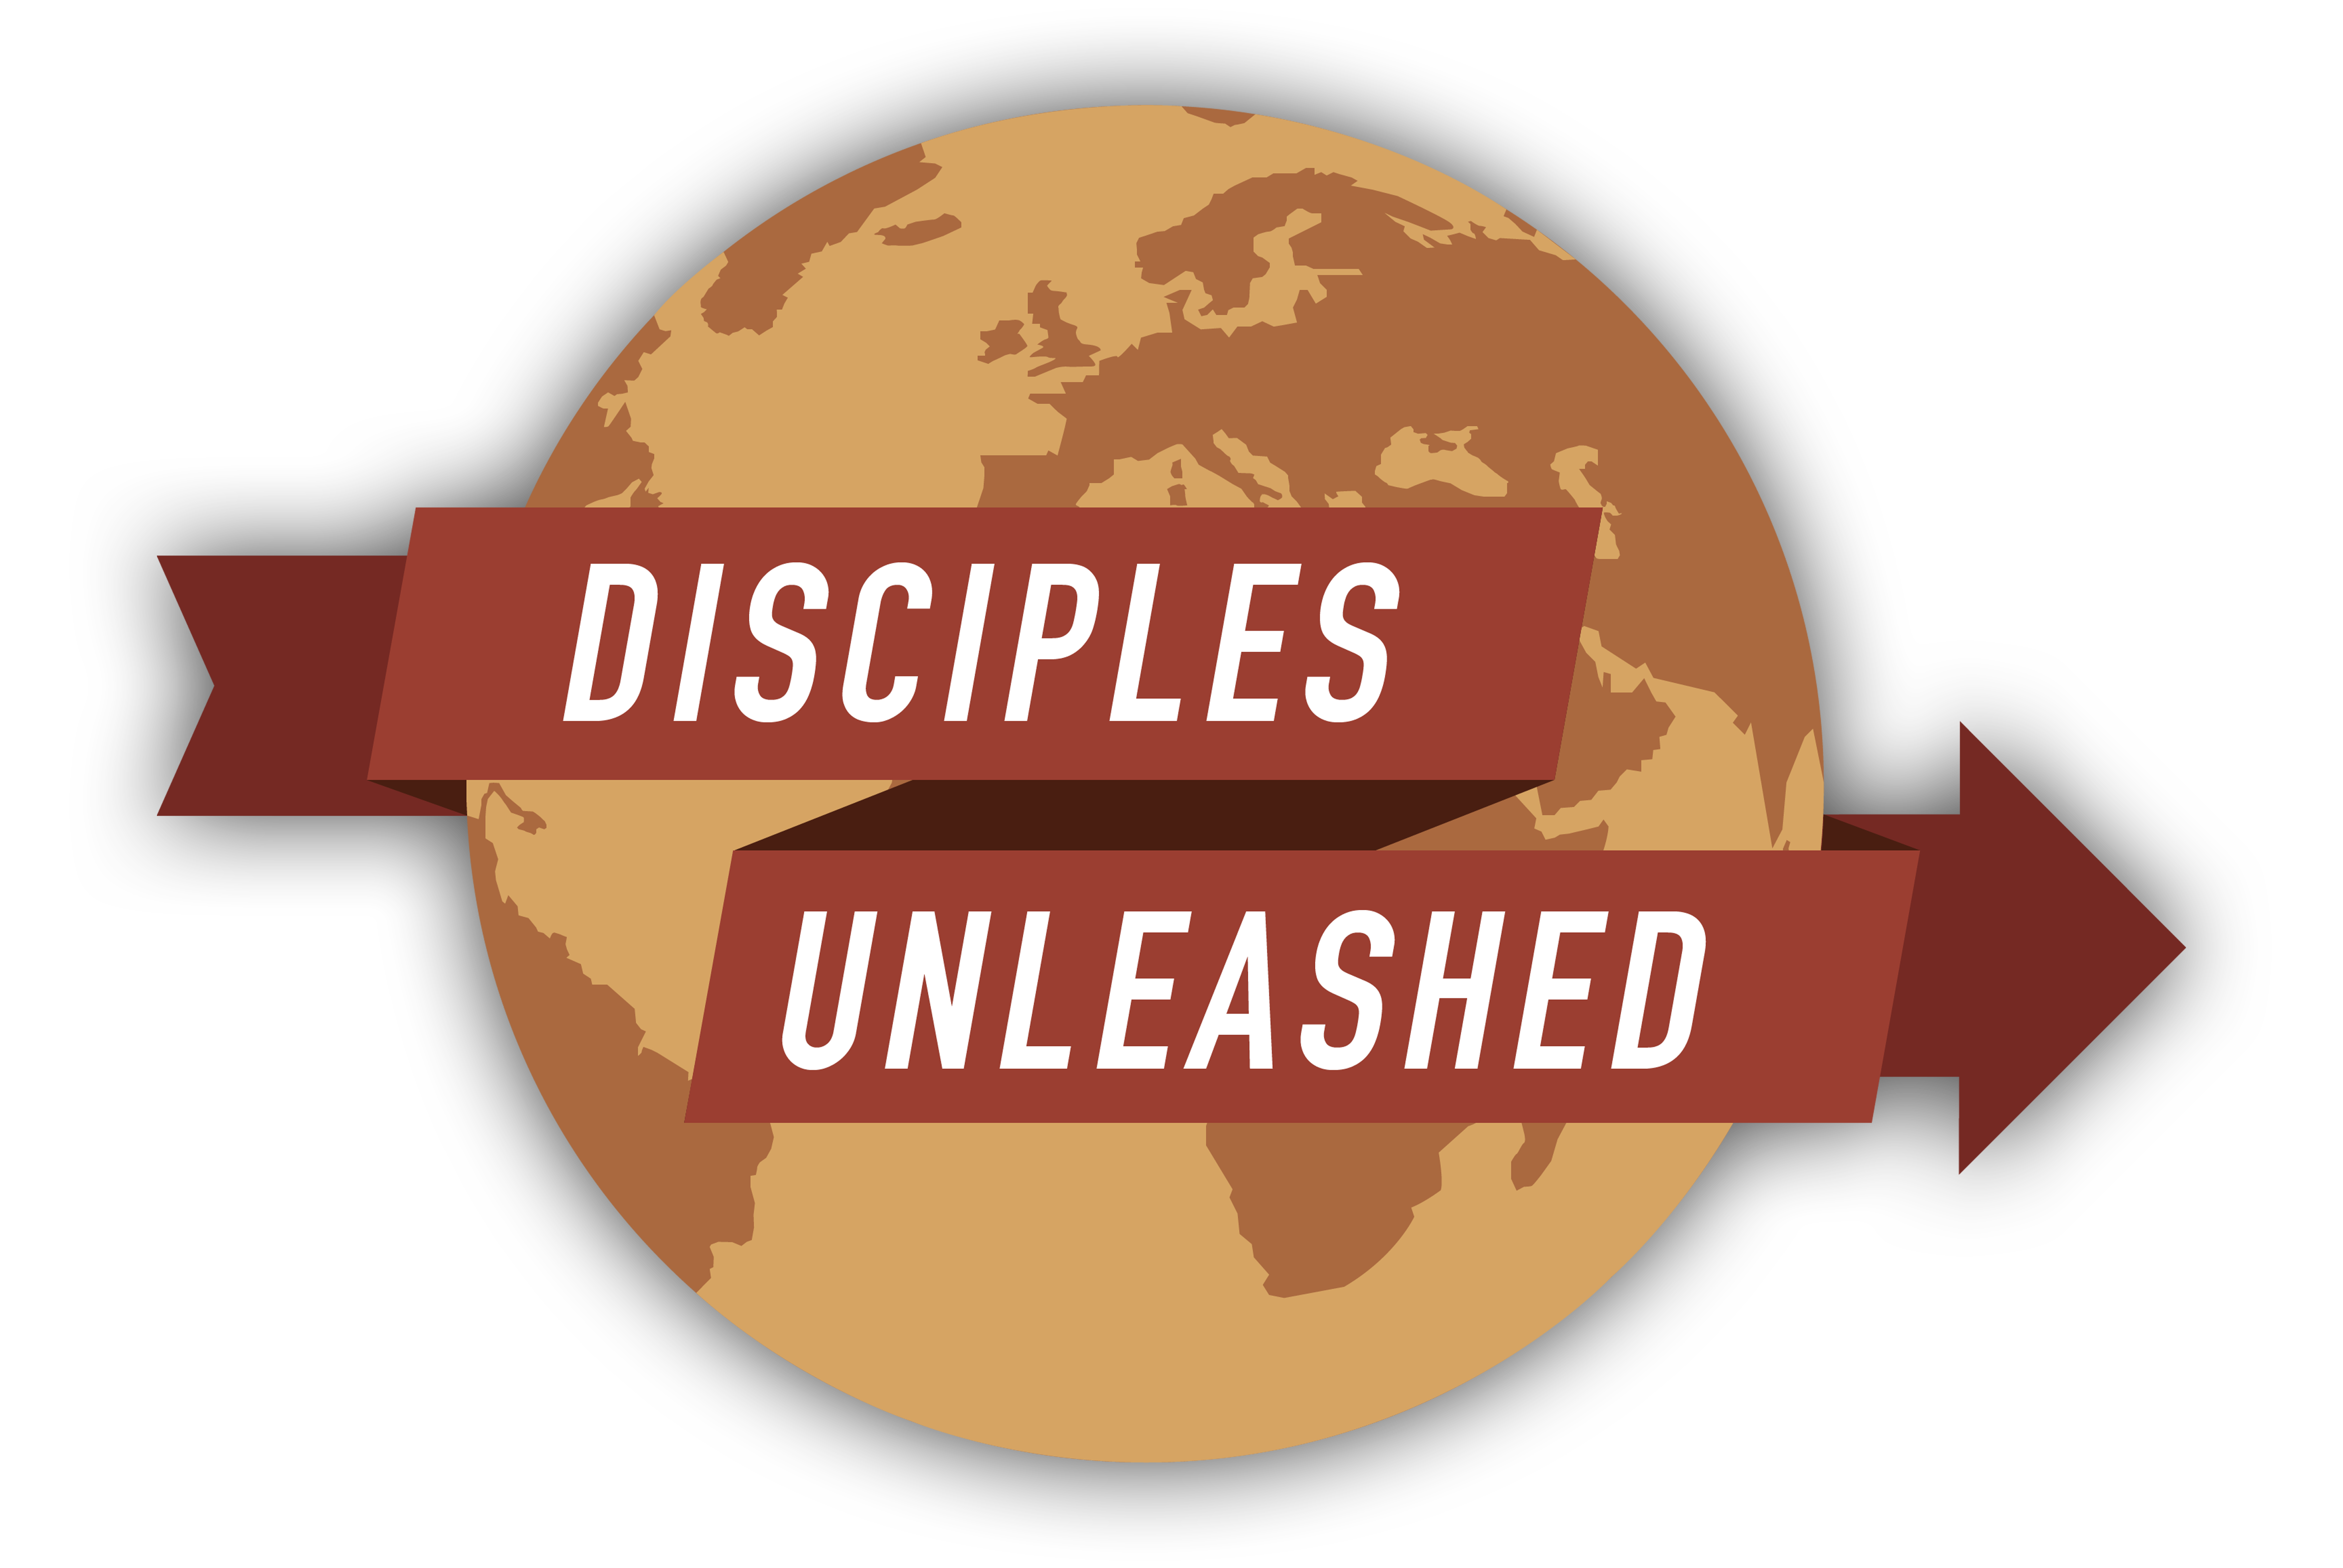 Disciples Unleashed